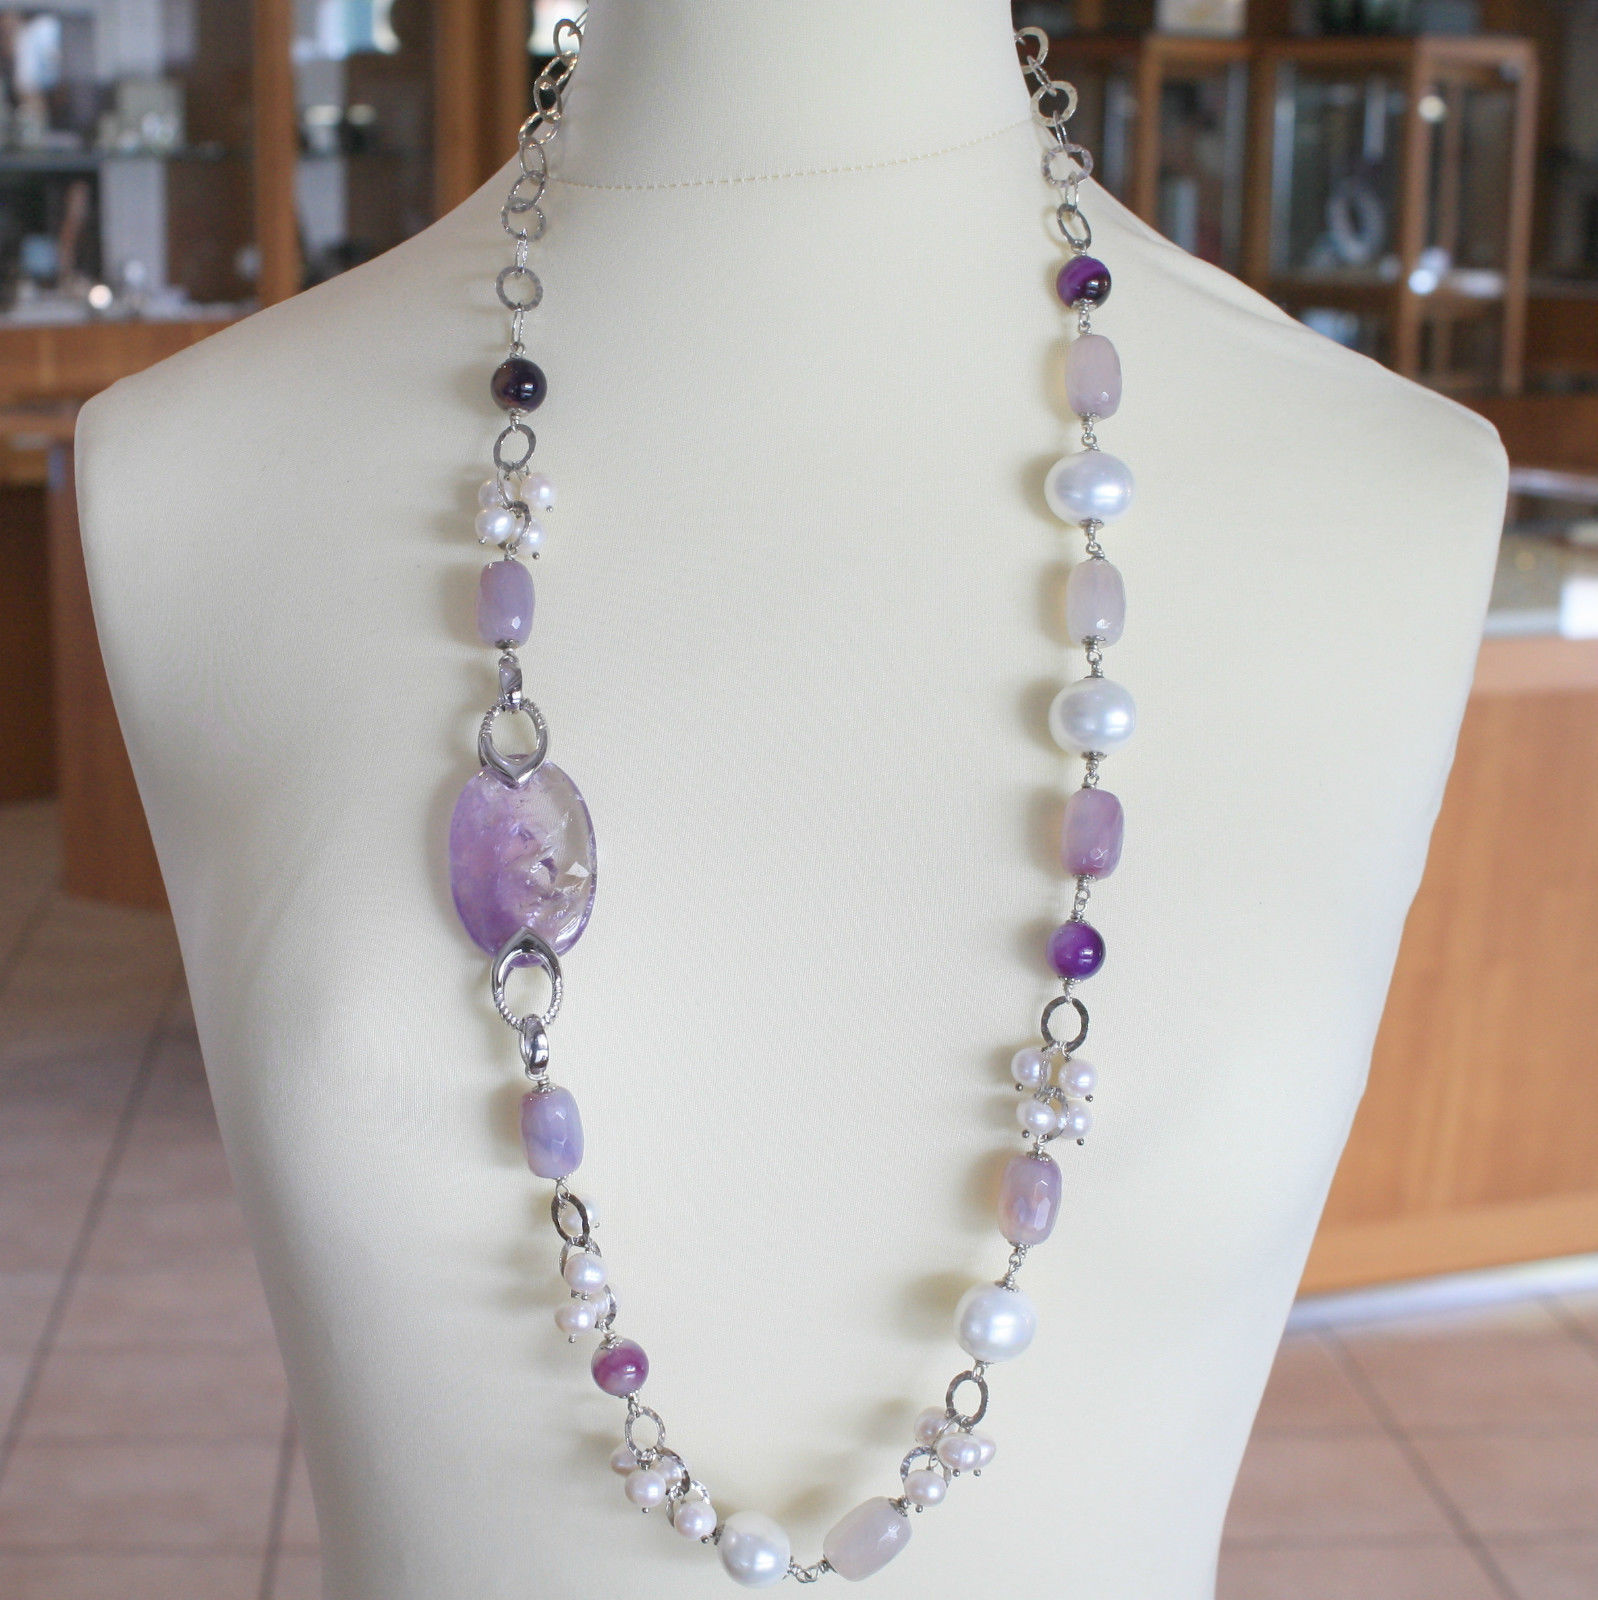 SOLID .925 RHODIUM SILVER LONG NECKLACE WITH PEARL, AGATE AND AMETHYST 36.6 IN